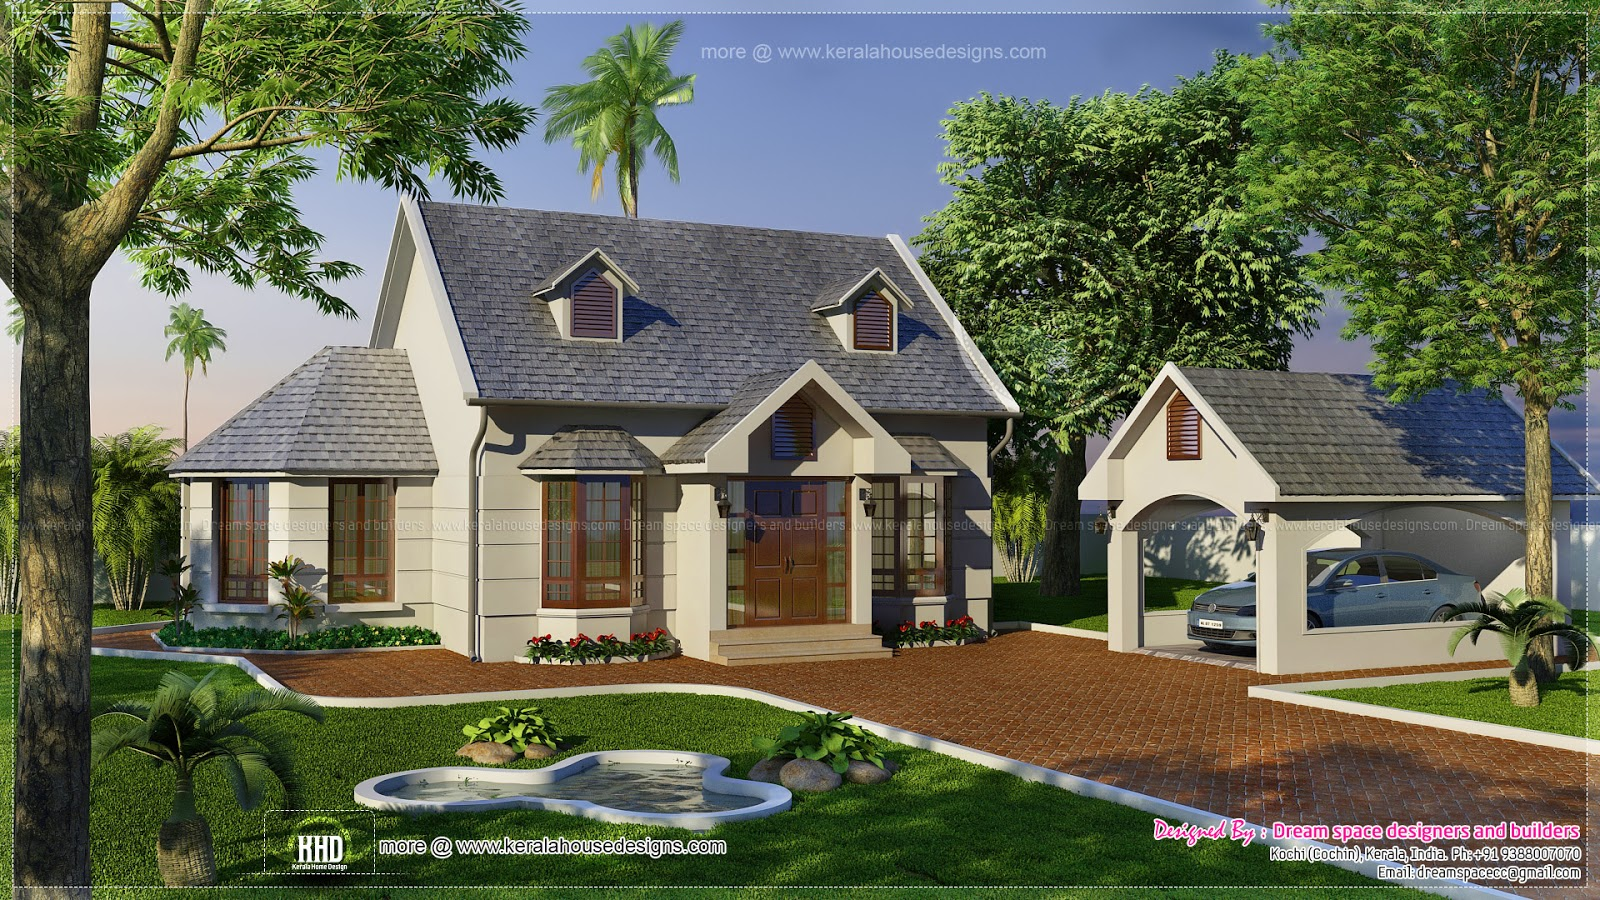 Vacation garden home design in 1200 kerala home for Garden houses designs